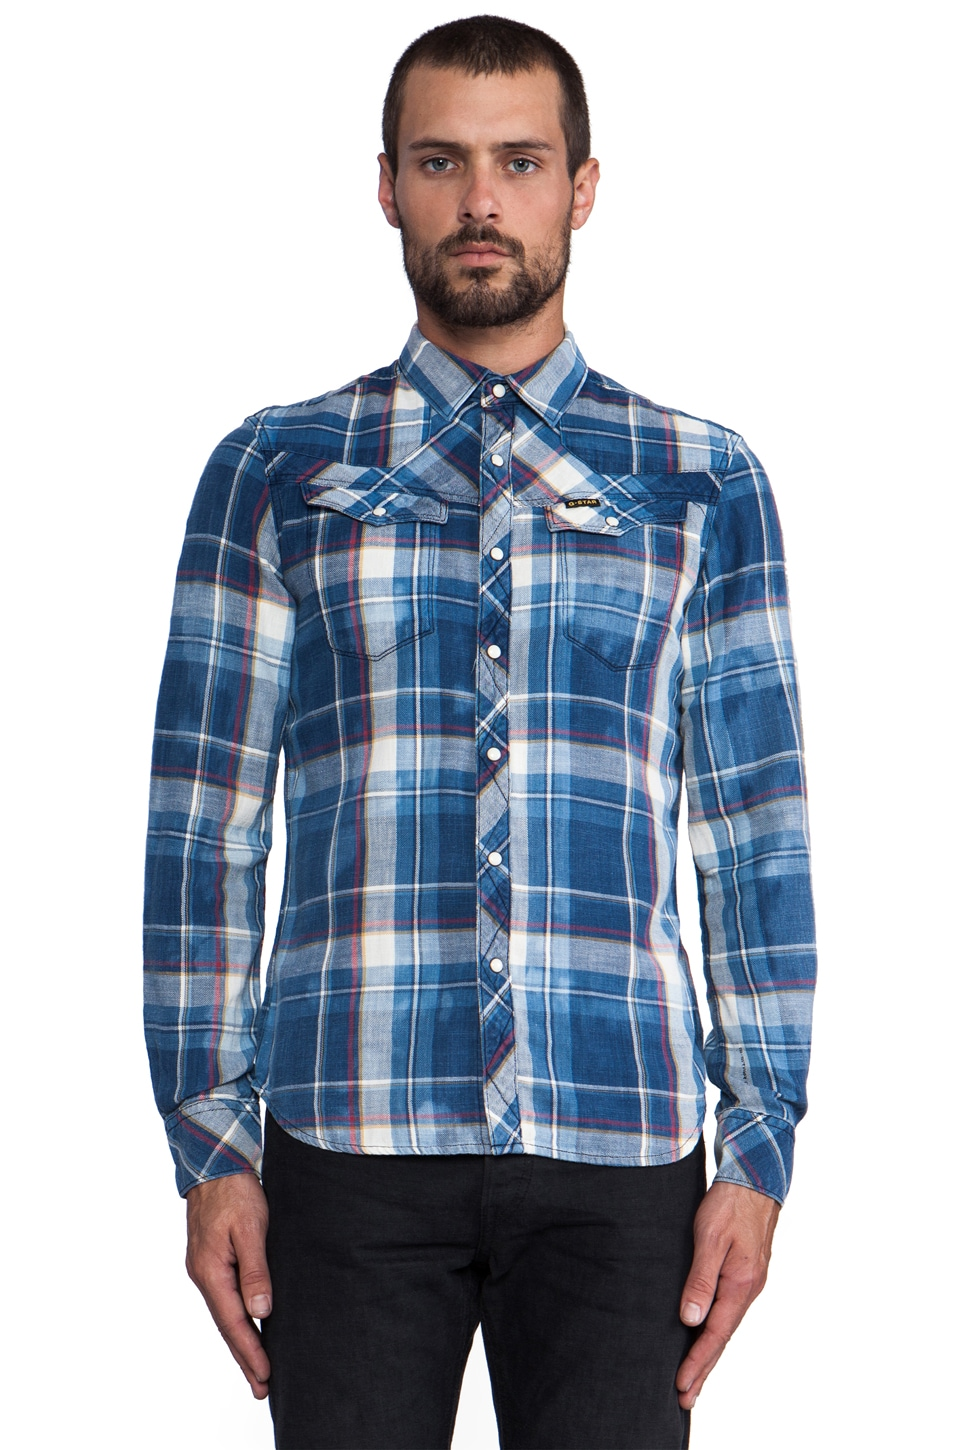 G-Star Tailor Plaid Shirt in Medium Aged